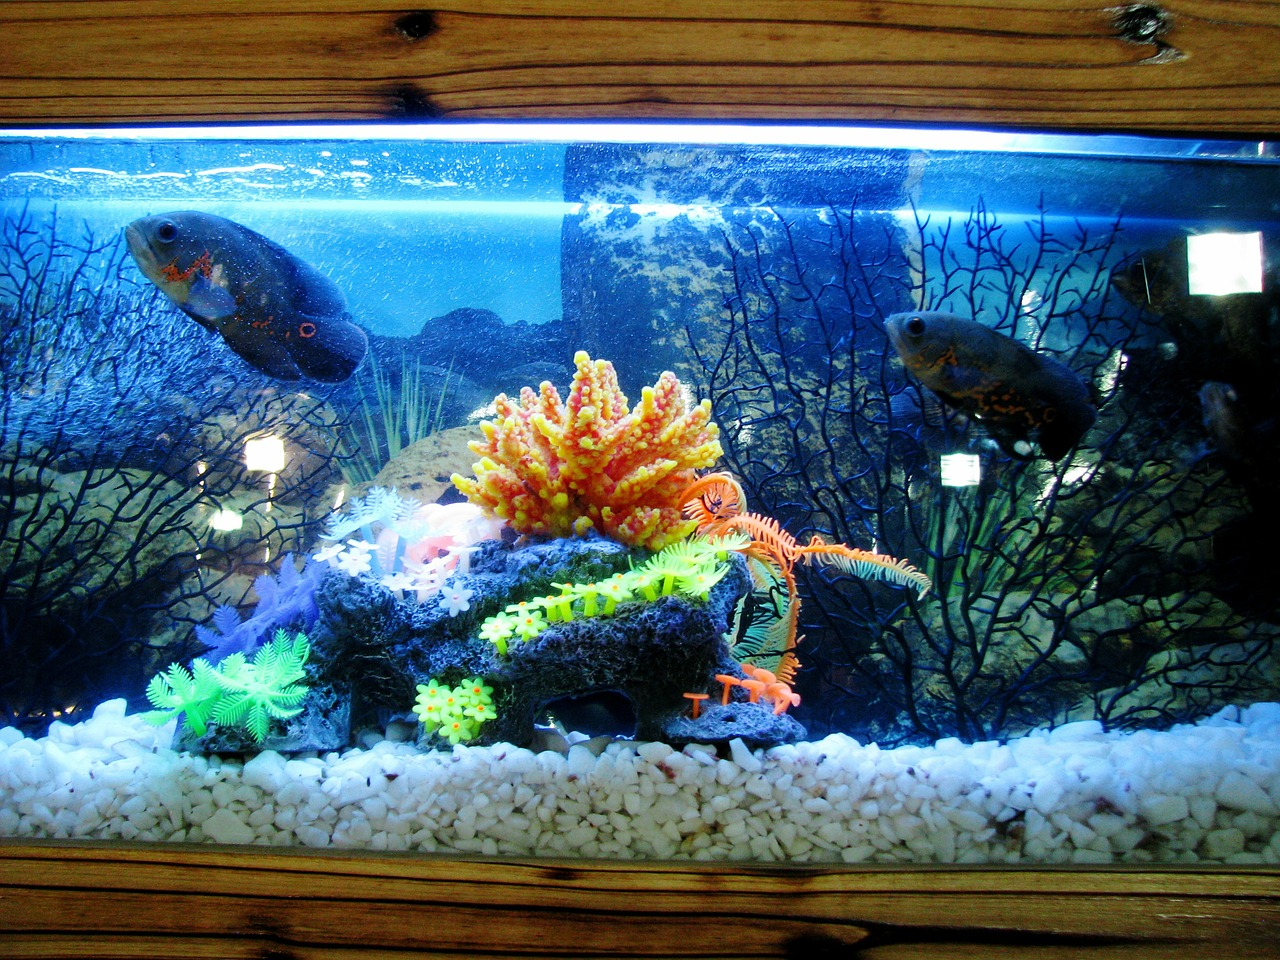 Fish aquarium business - Aquarium 390745_1280